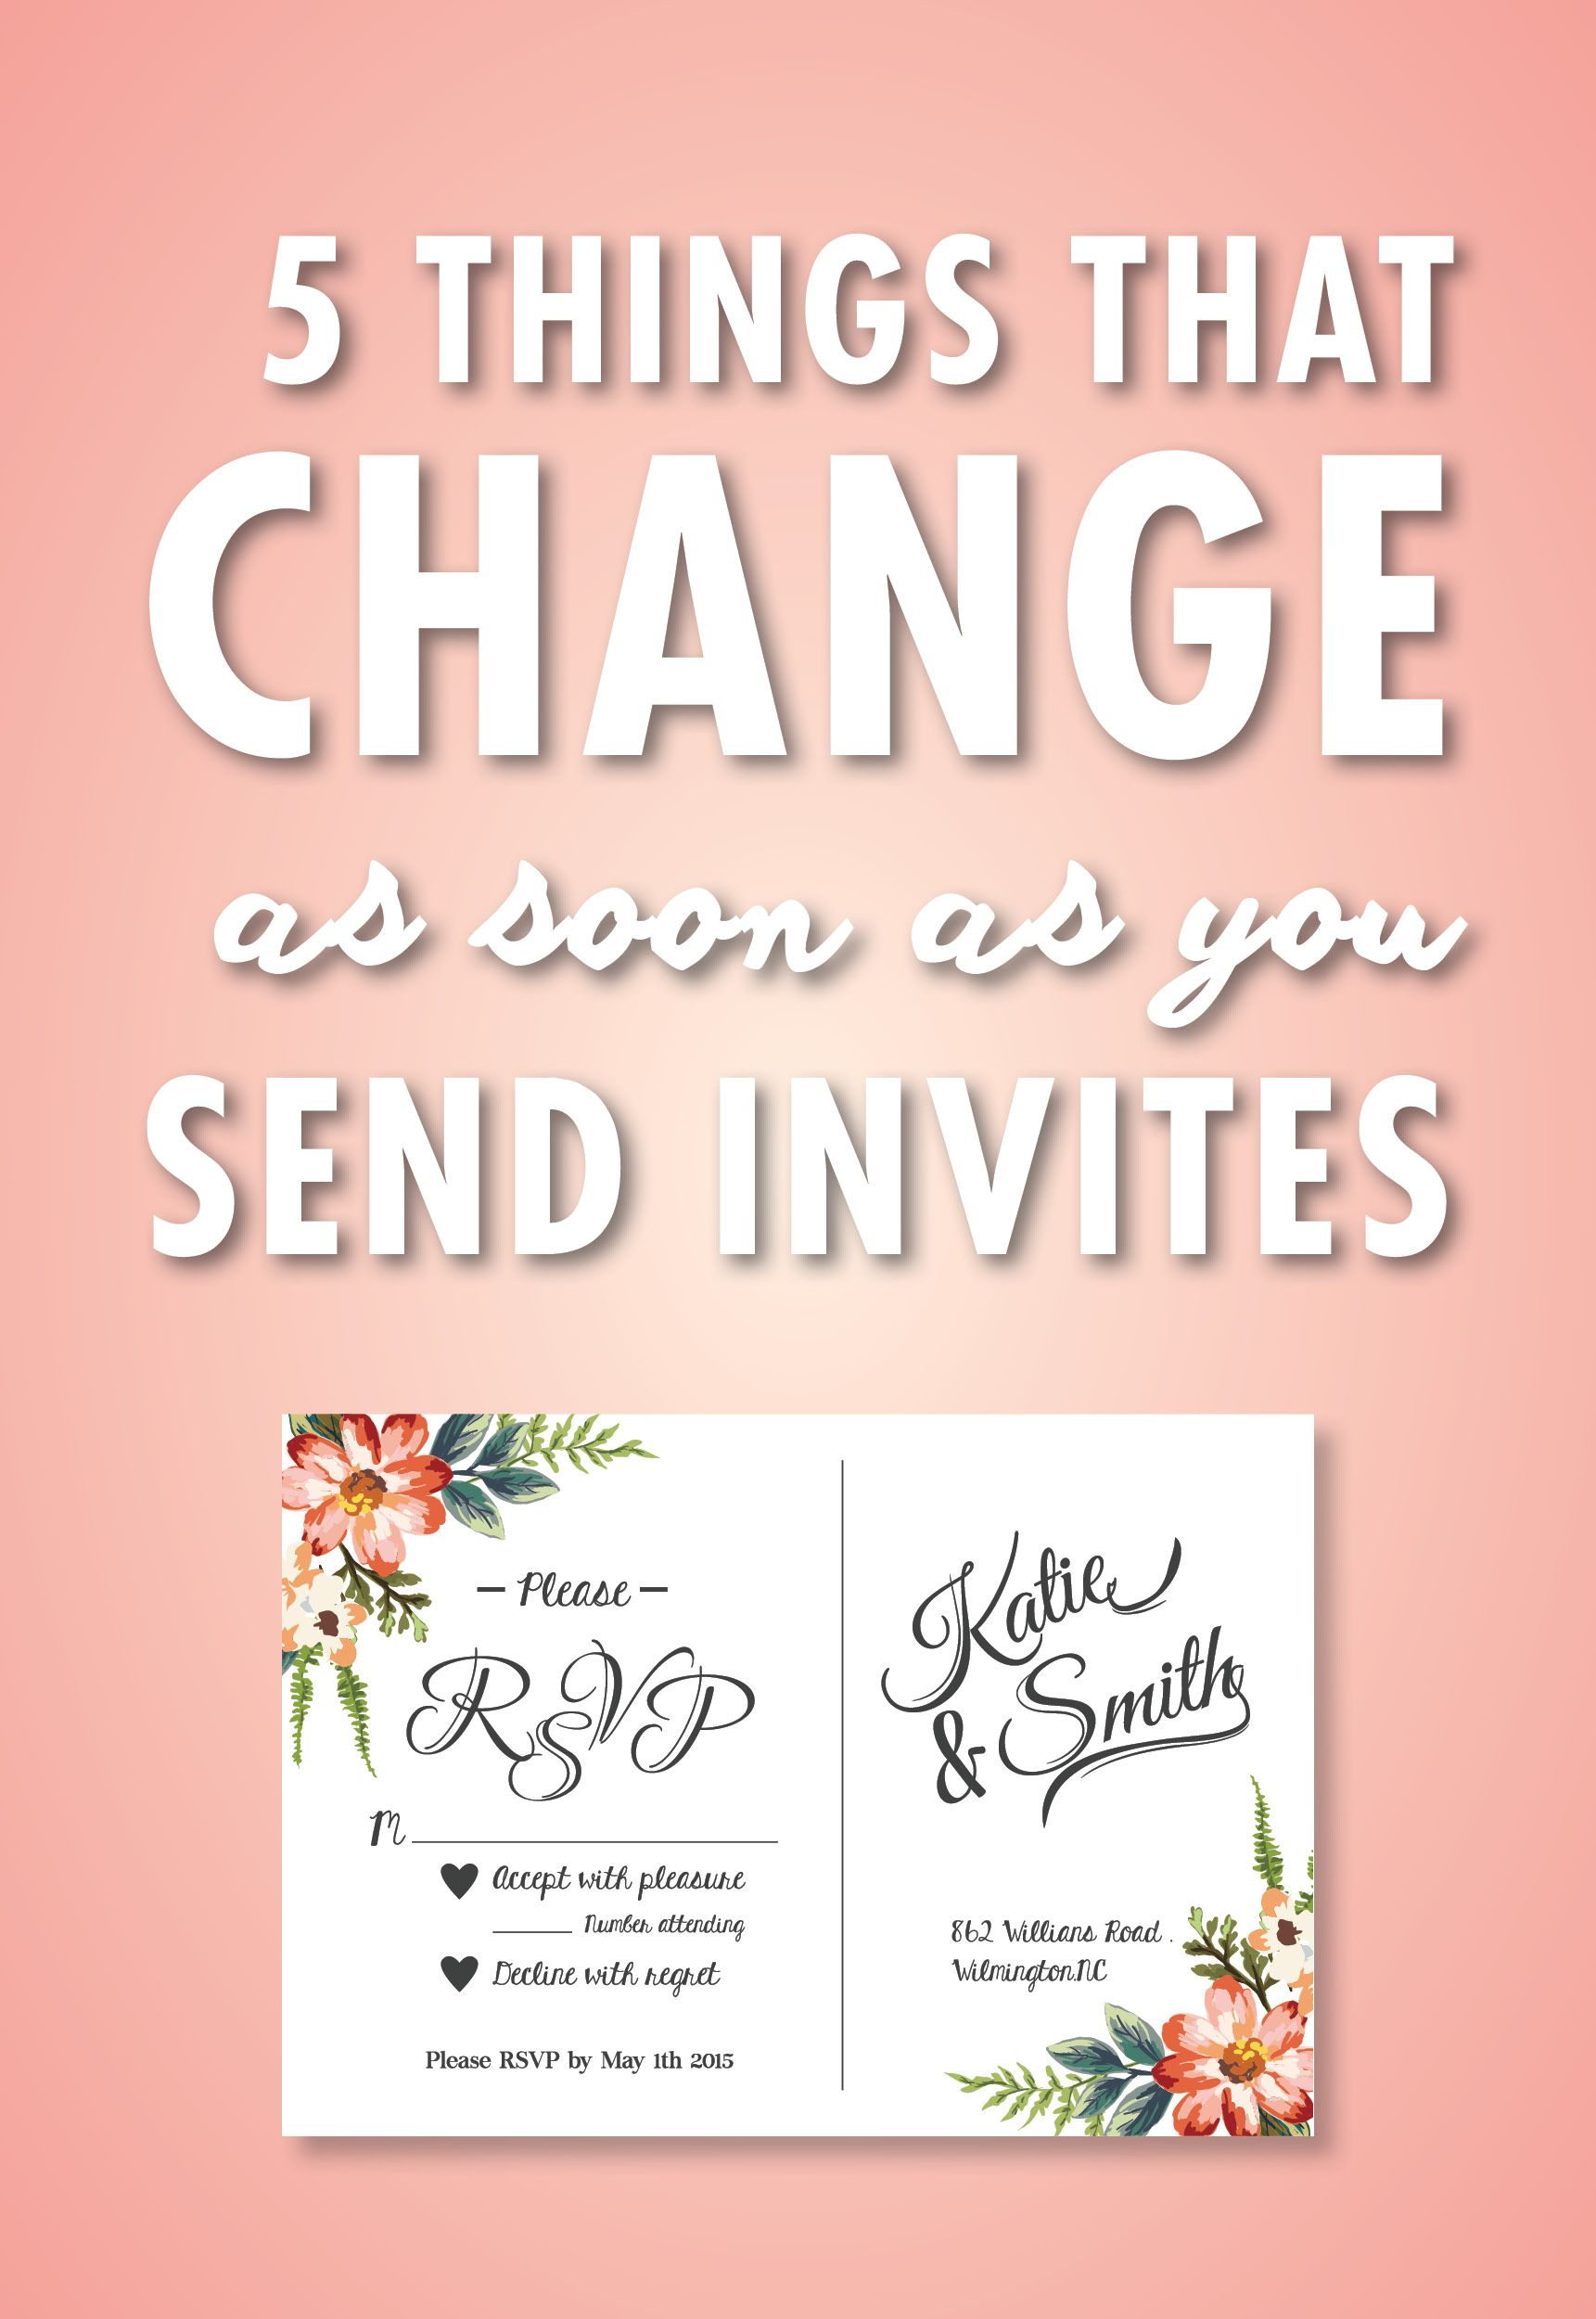 When To Send Wedding Invites Wedding Planning Organizer Wedding Invitations Wedding Event Planning